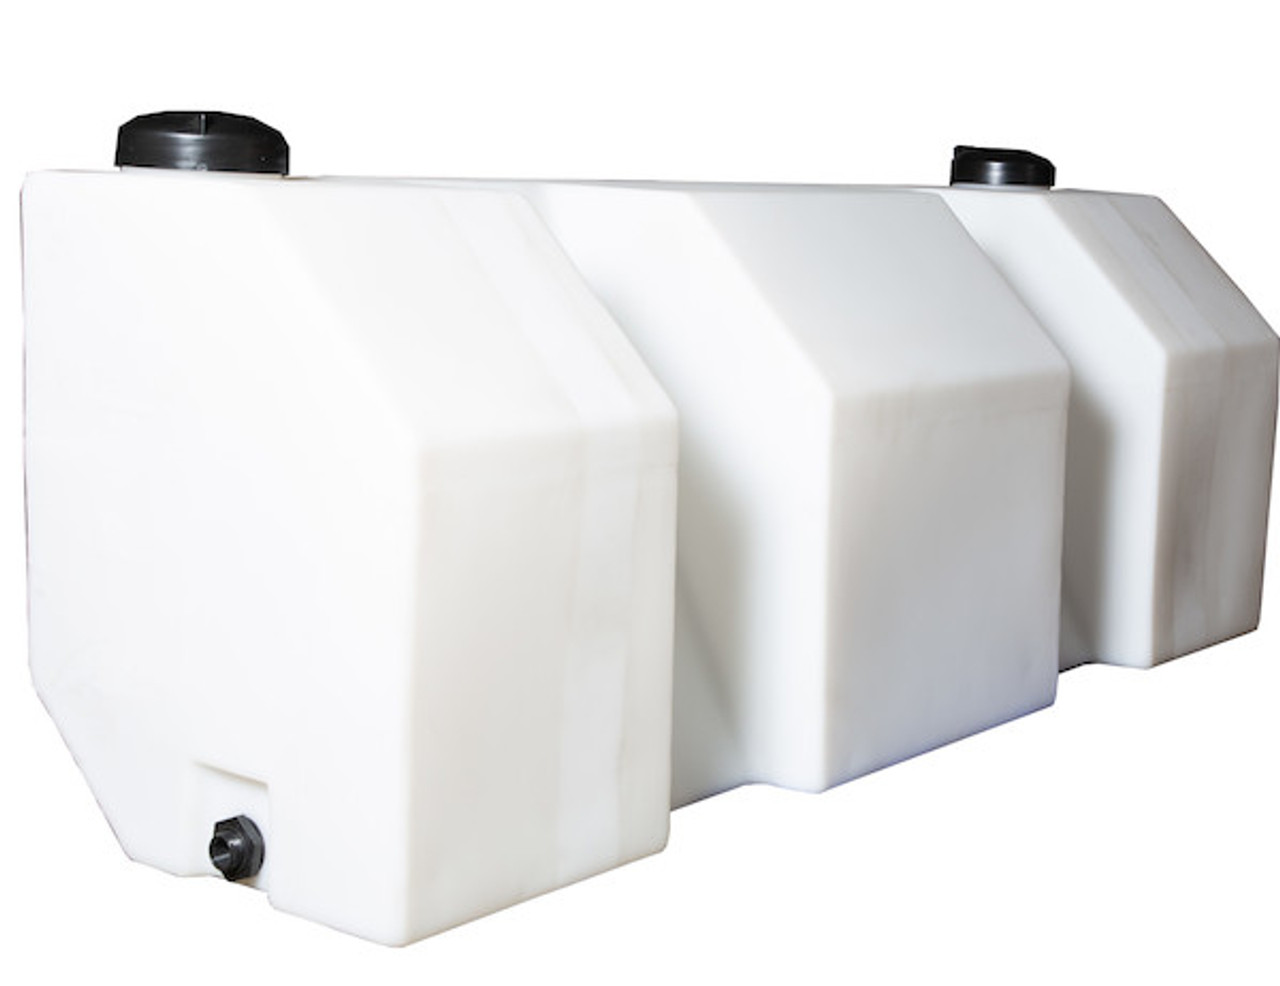 LS4 Buyers SaltDogg 12 VDC Pre-Wet Kit With One 105-Gallon Poly V-Box Mount Reservoir Picture # 4